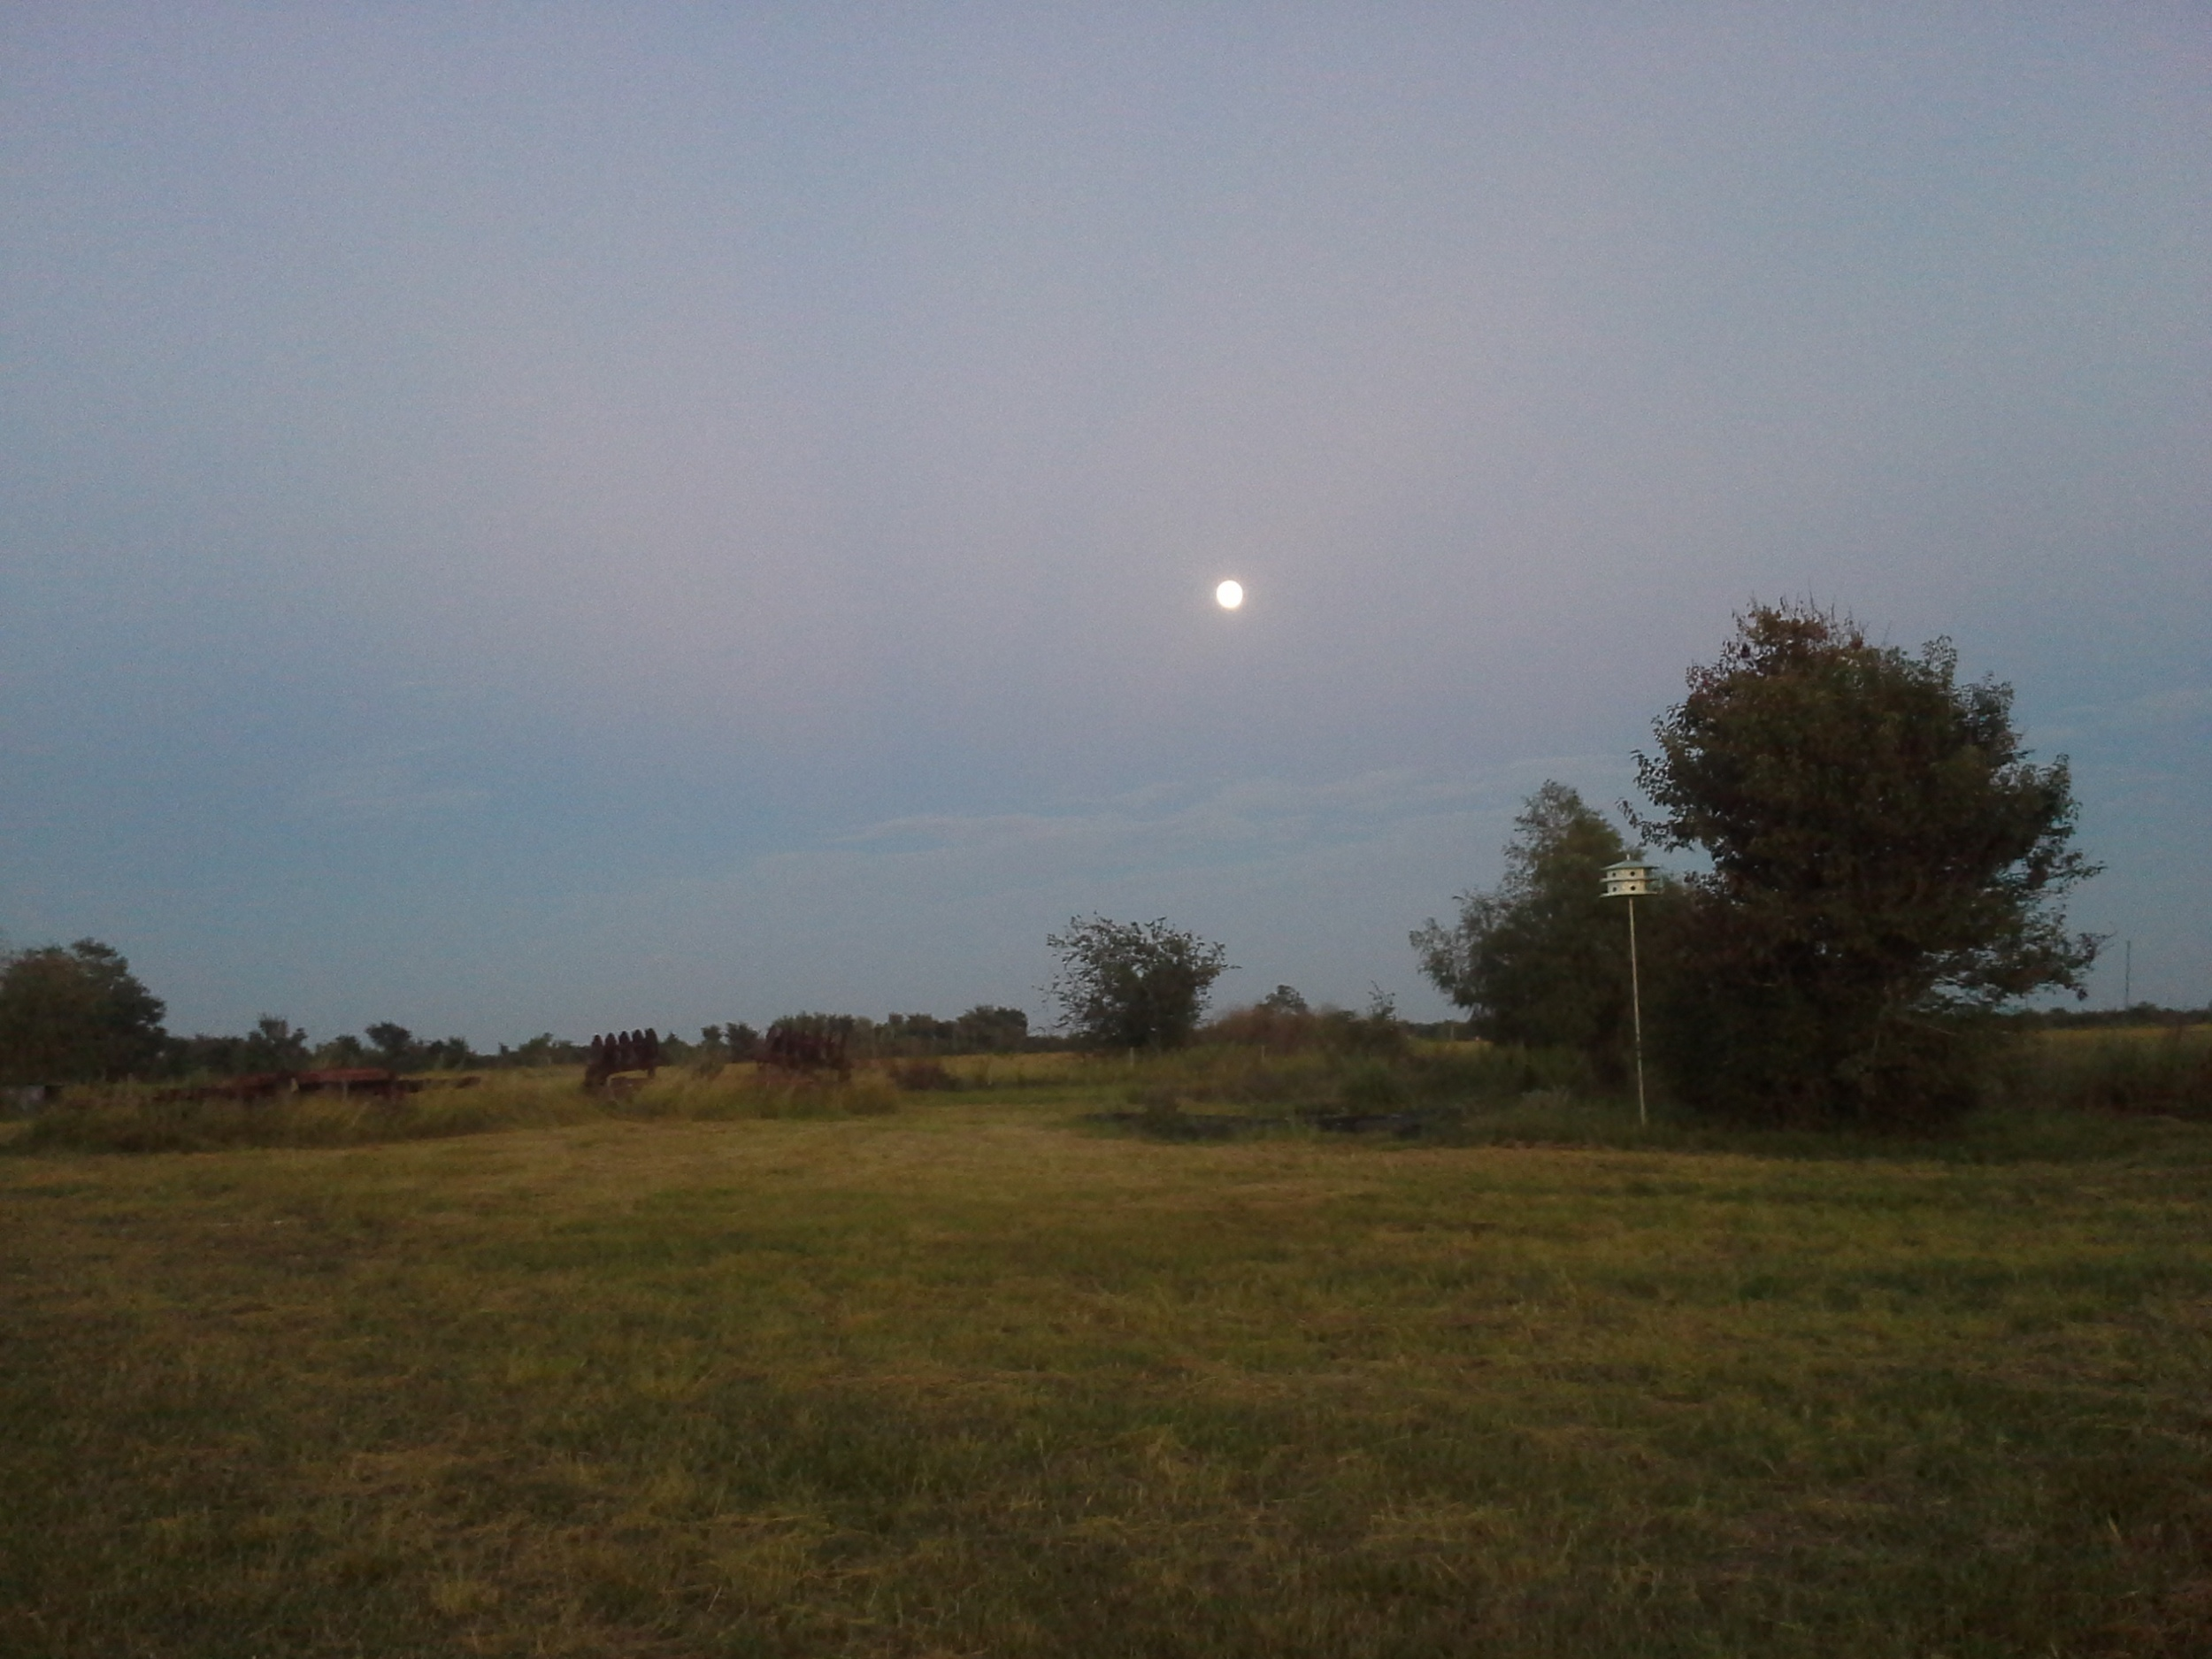 Now, that's an Autumn Moon Dog night.